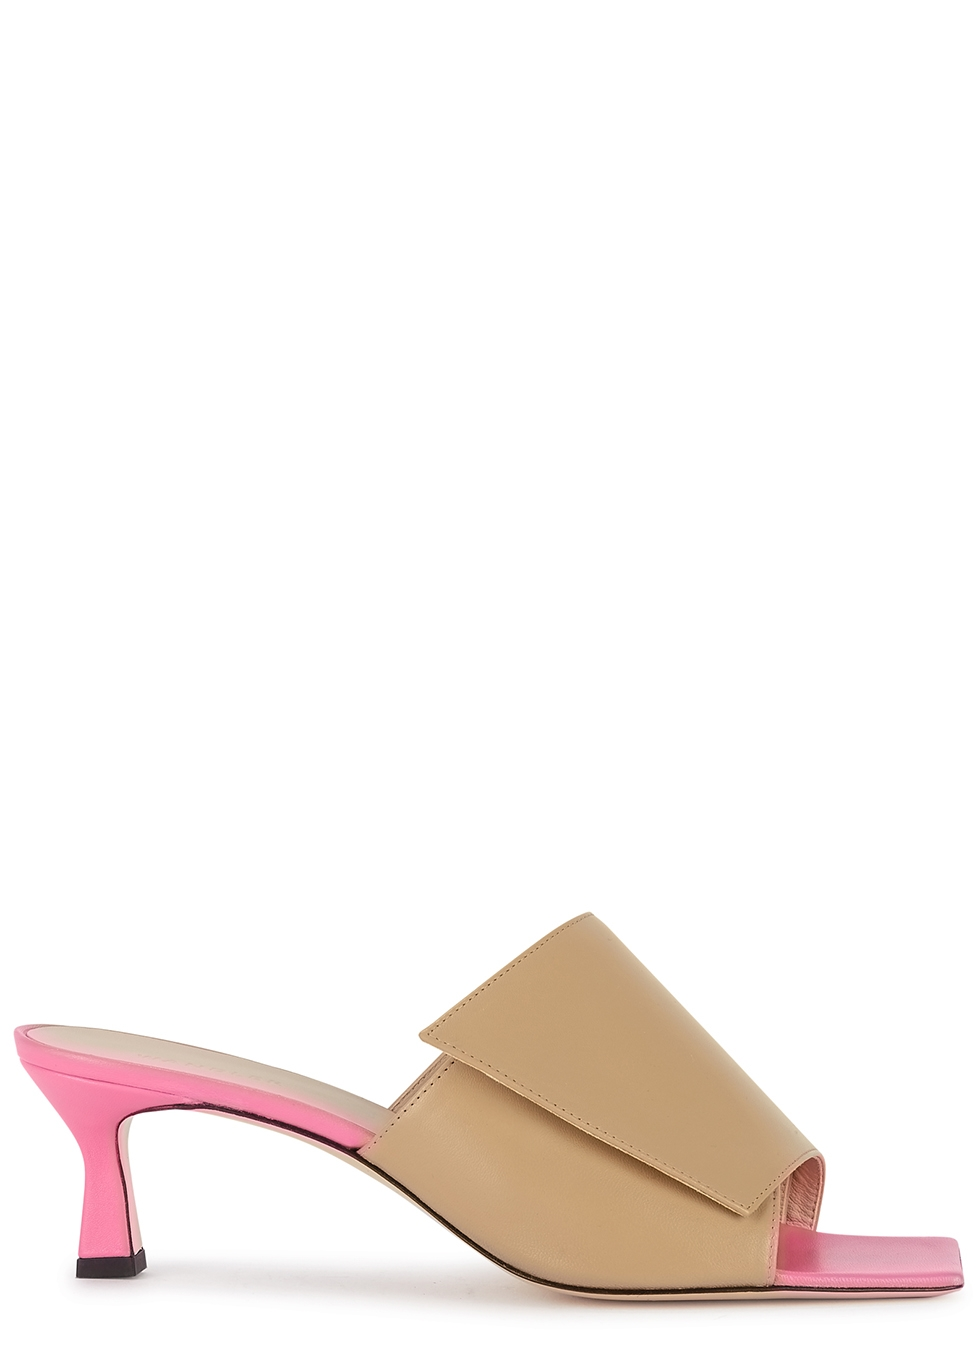 Isa 50 camel leather sandals